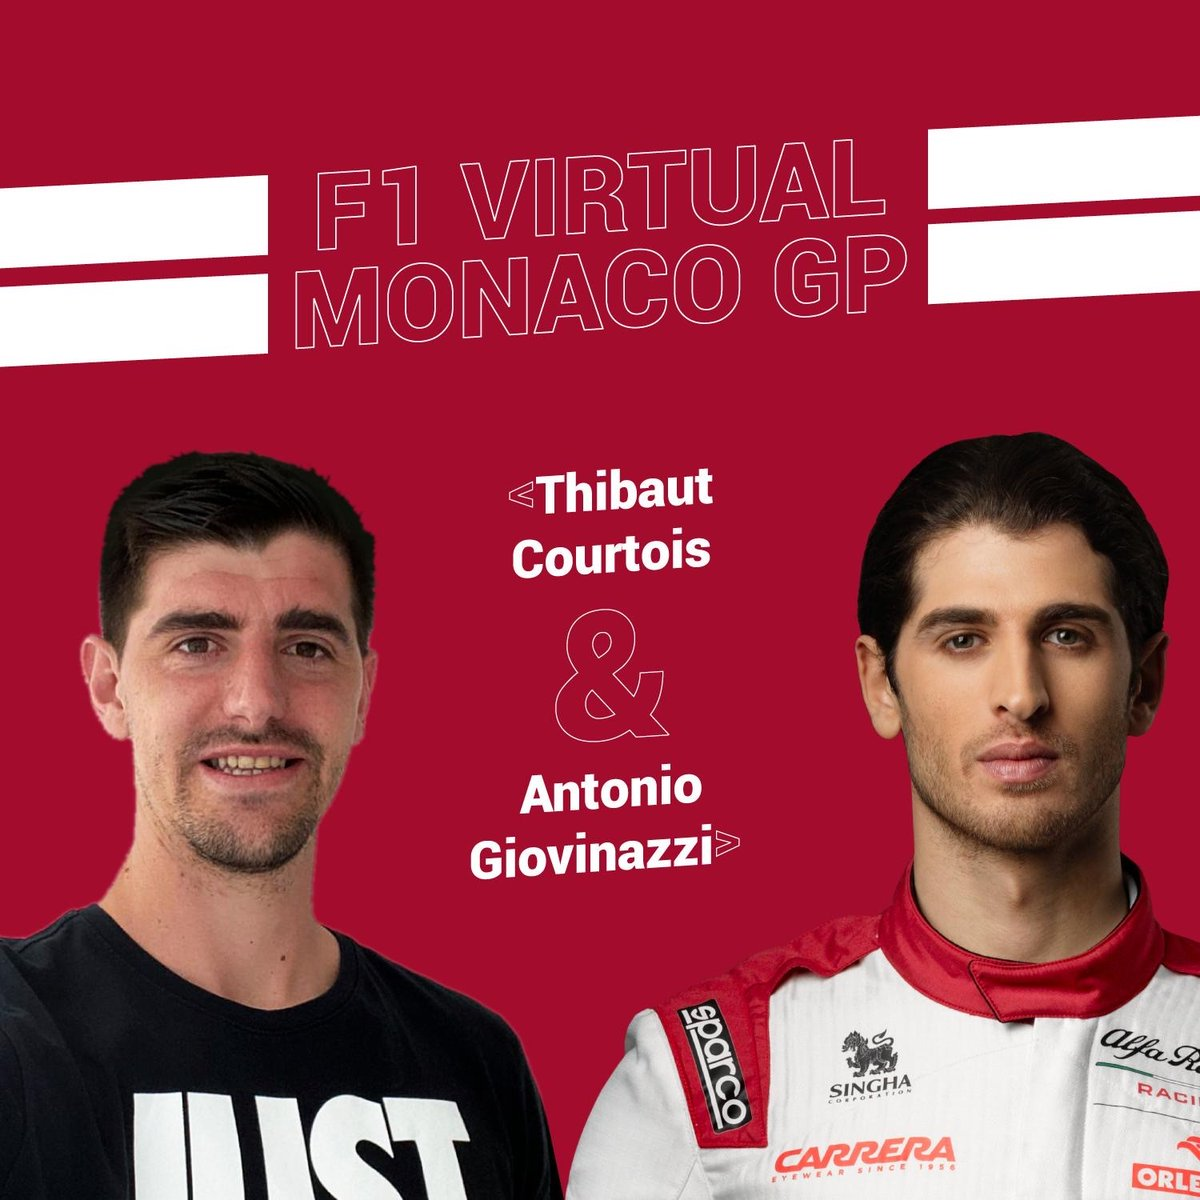 Racing @F1 tonight together with my teammate Antonio on the Monaco track in the #VirtualGP. Determined to keep up with the best in this racing classic! 💪🏼 #F1Esports https://t.co/6Ir7X6aMQZ